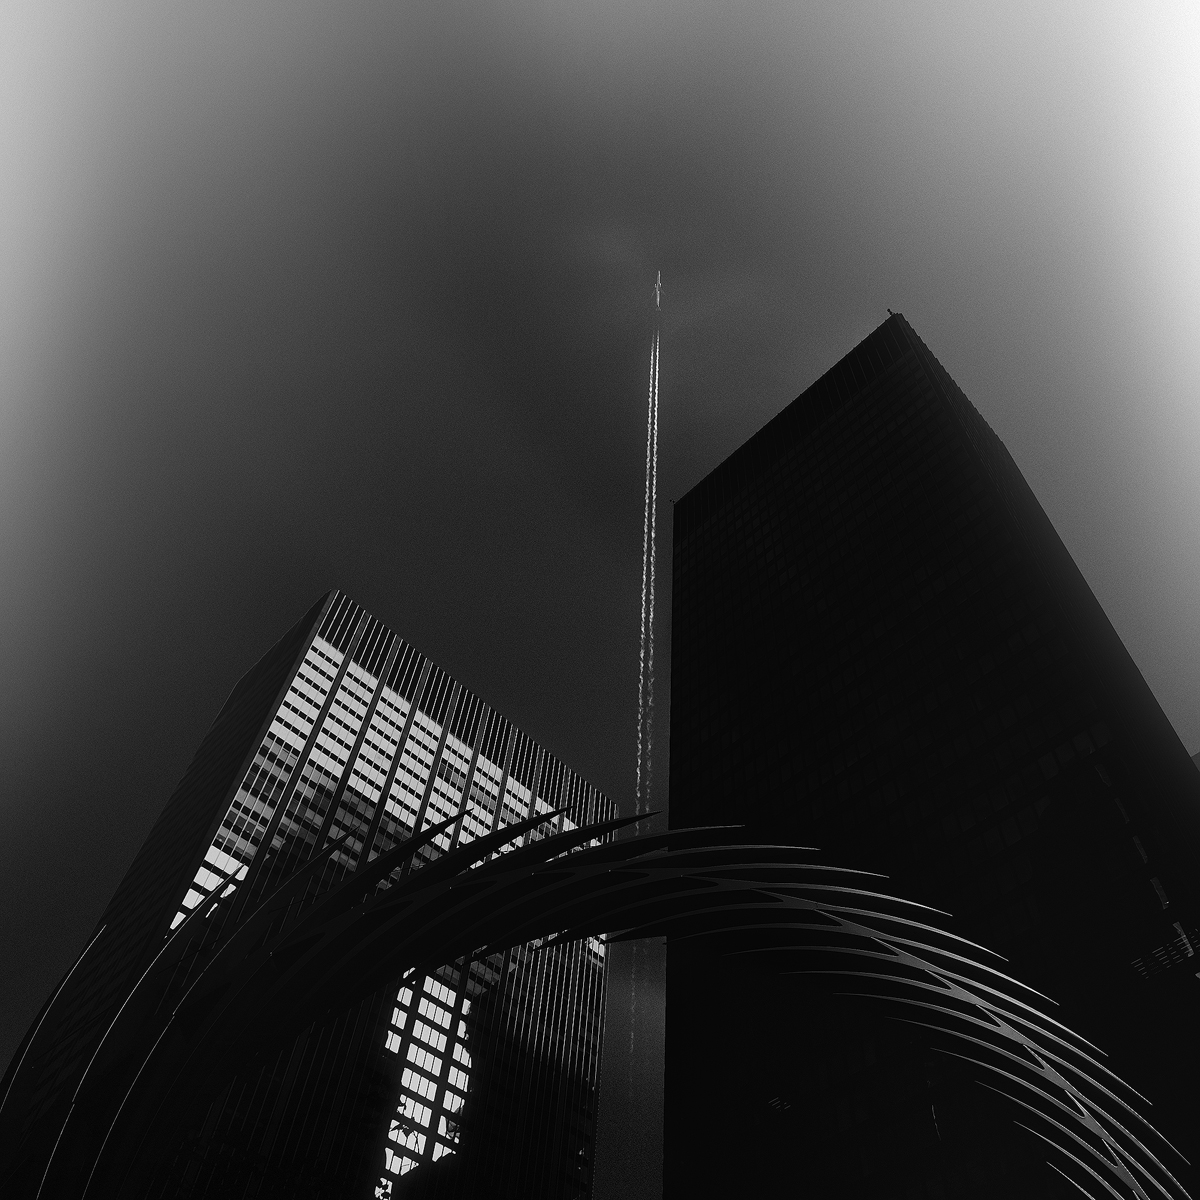 NYC Perspective - Arc Spike, New York, 2015